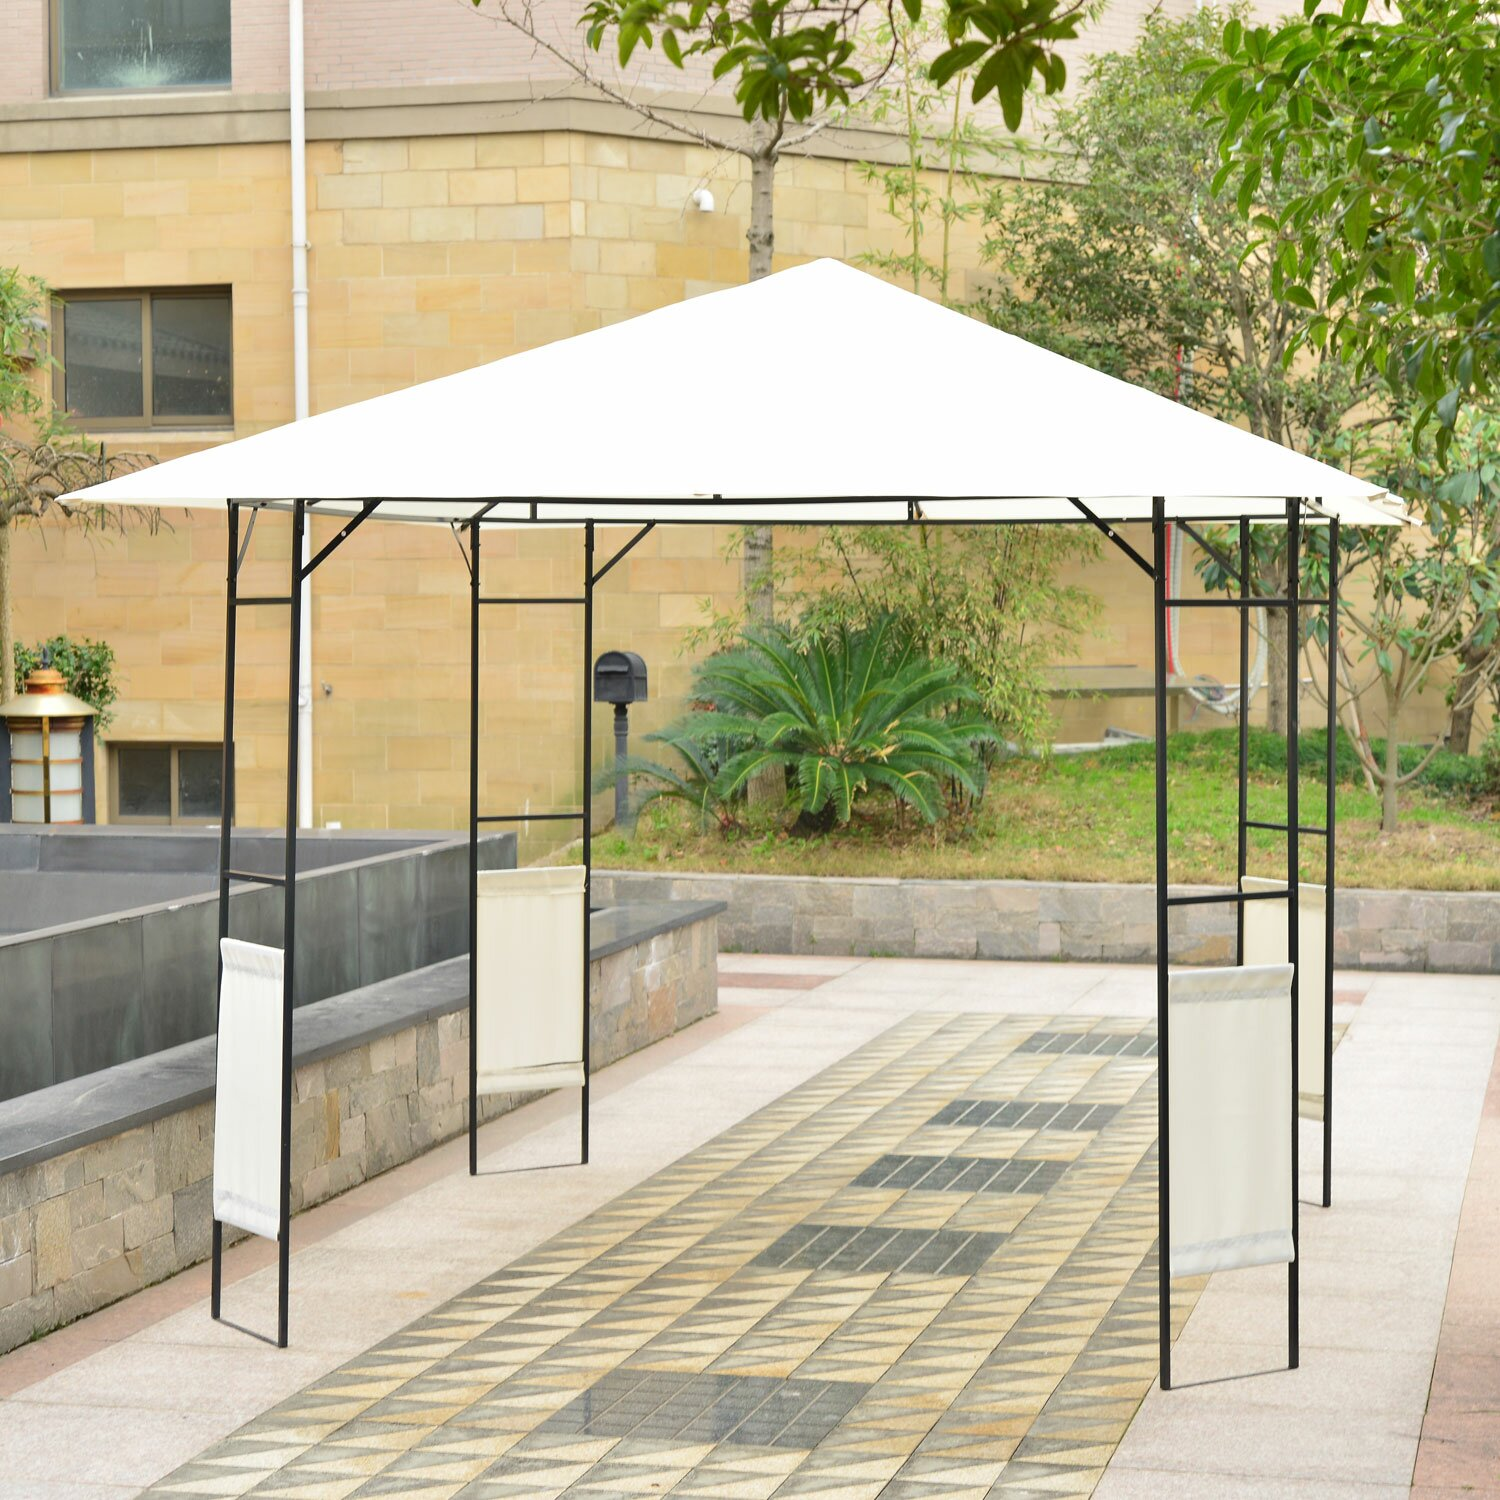 Steel Portable Gazebo : Outsunny modern ft w d metal portable gazebo